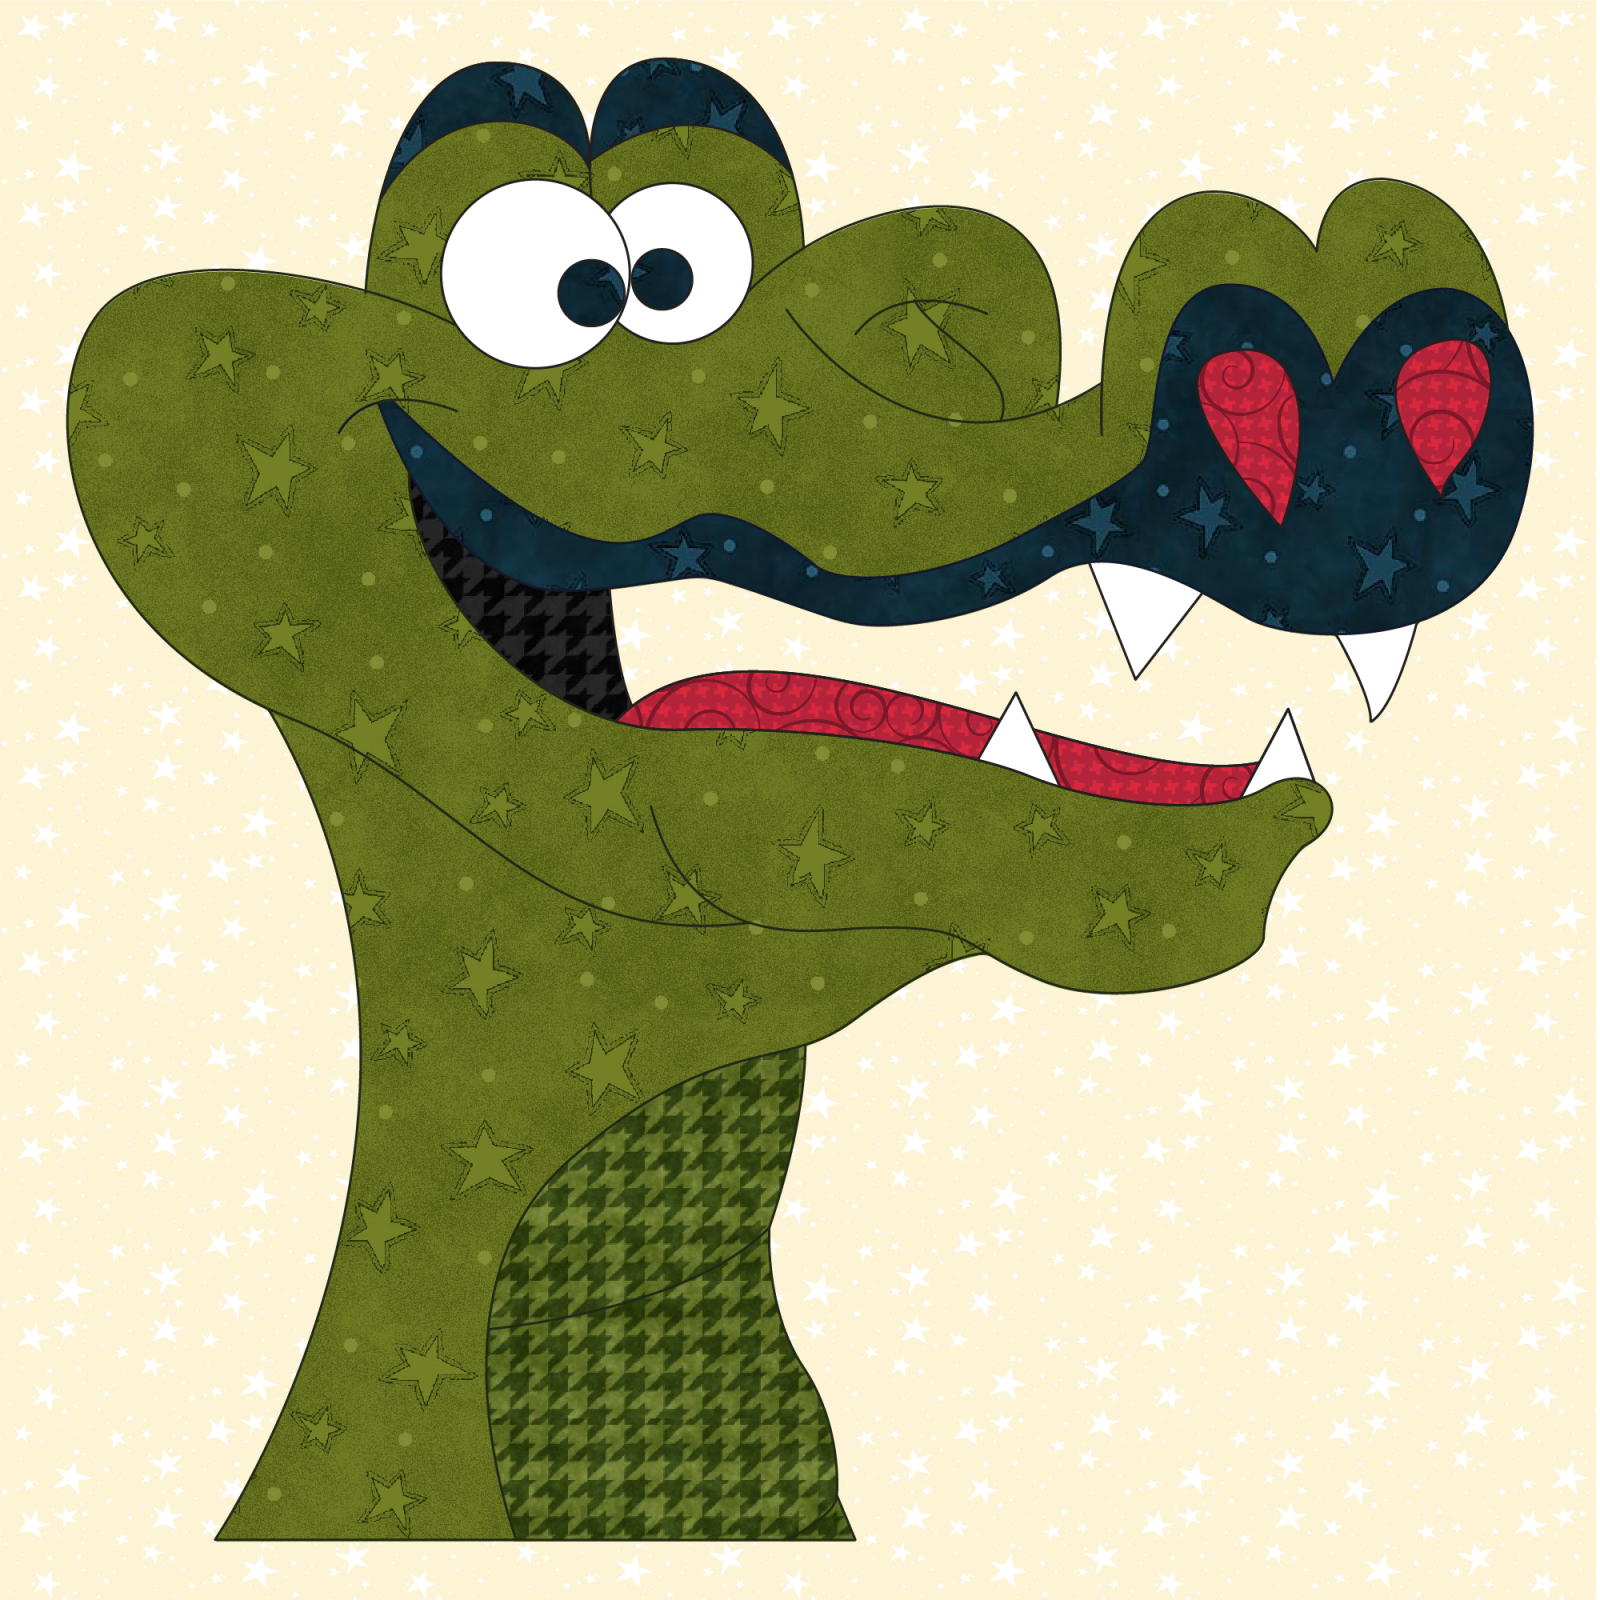 Alligator Precut Prefused Applique Kit